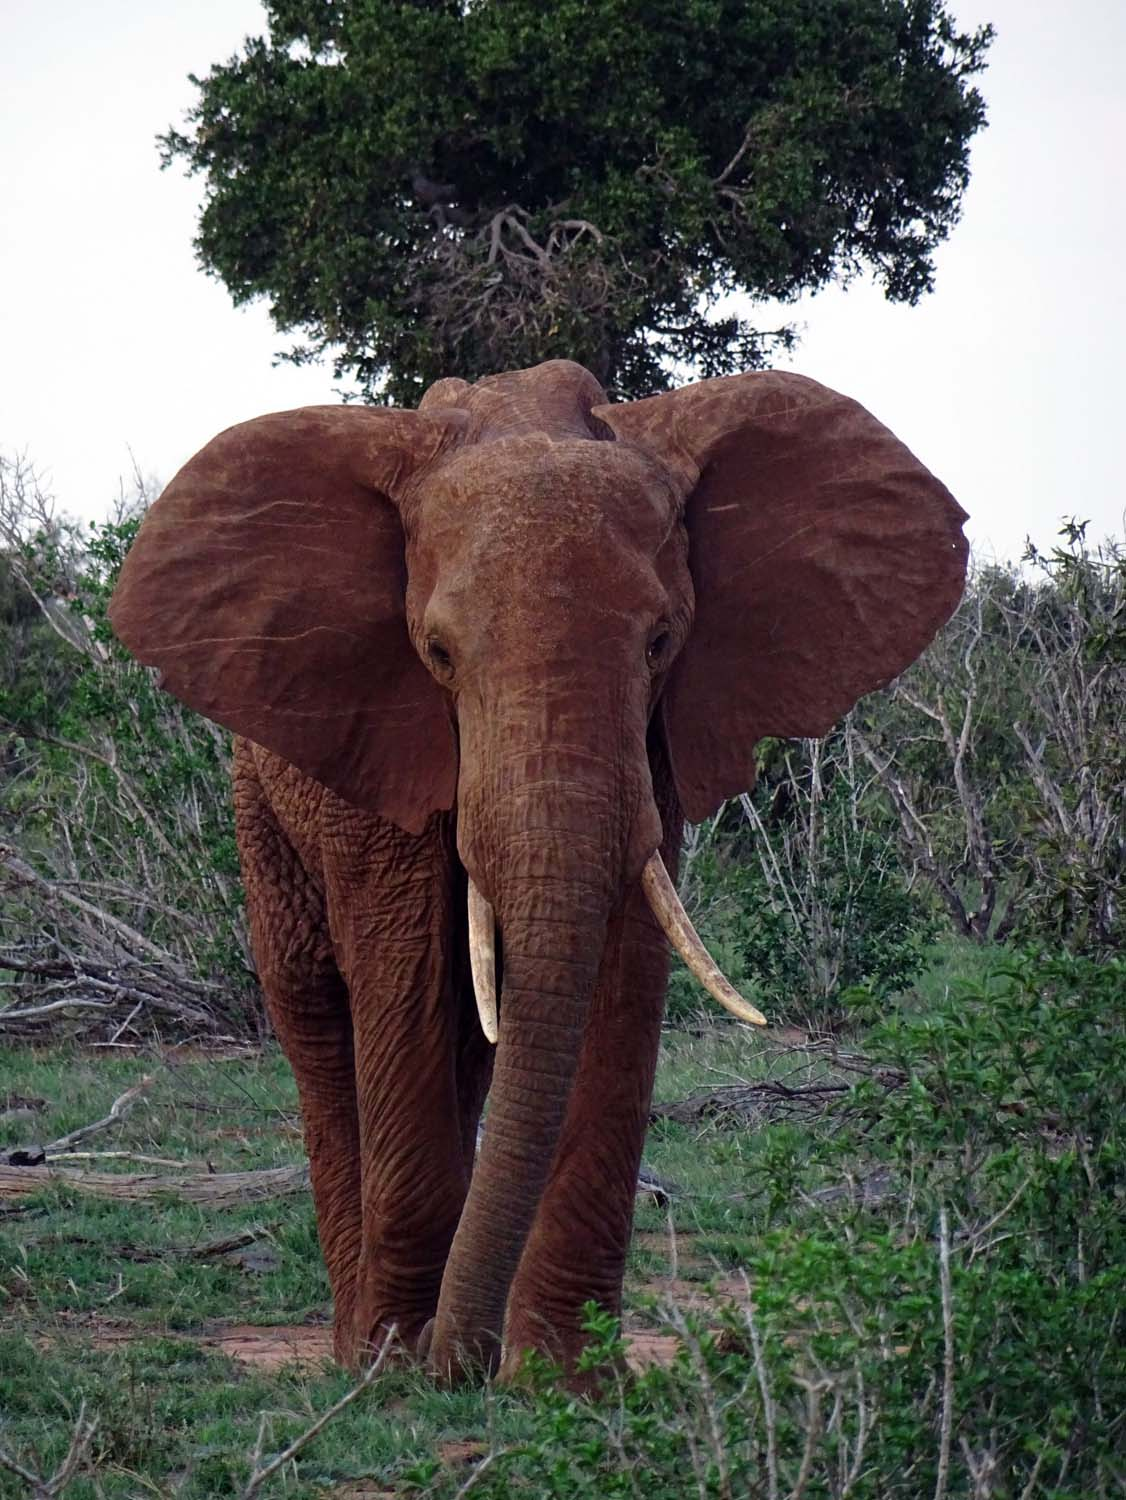 the elephants in Tsavo look very red due to the red earth there.